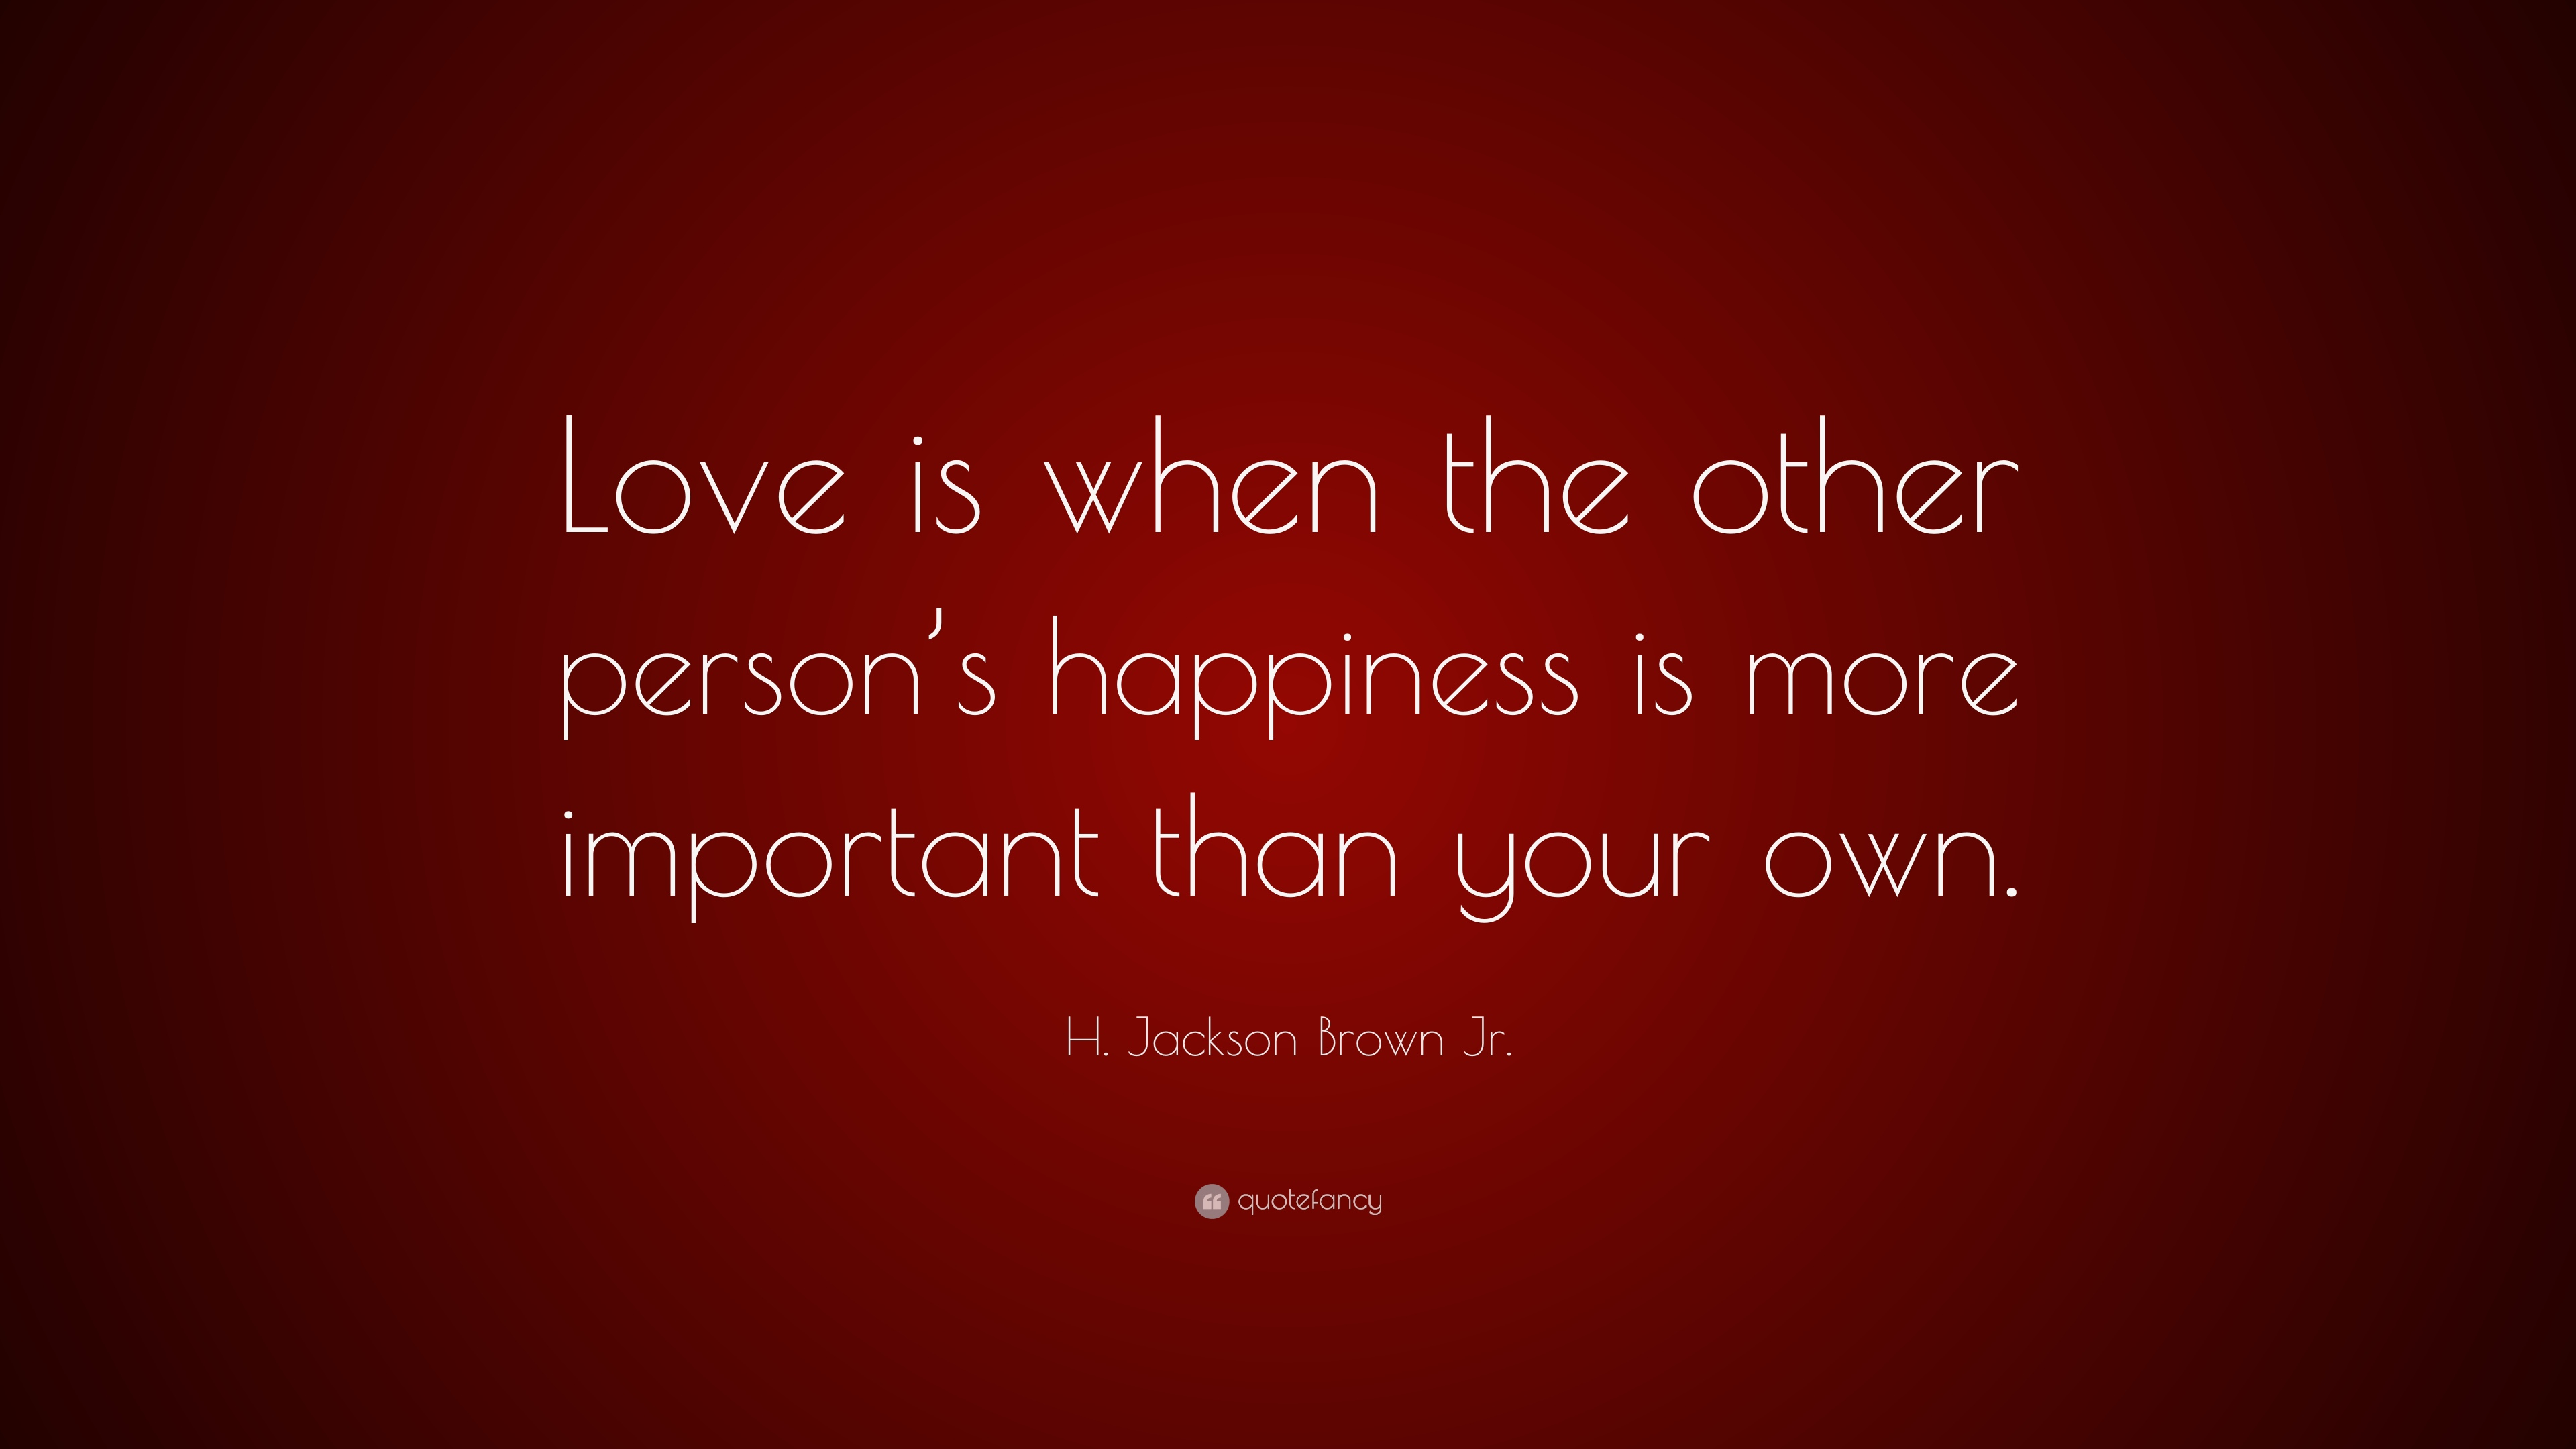 Why is love more important? 2